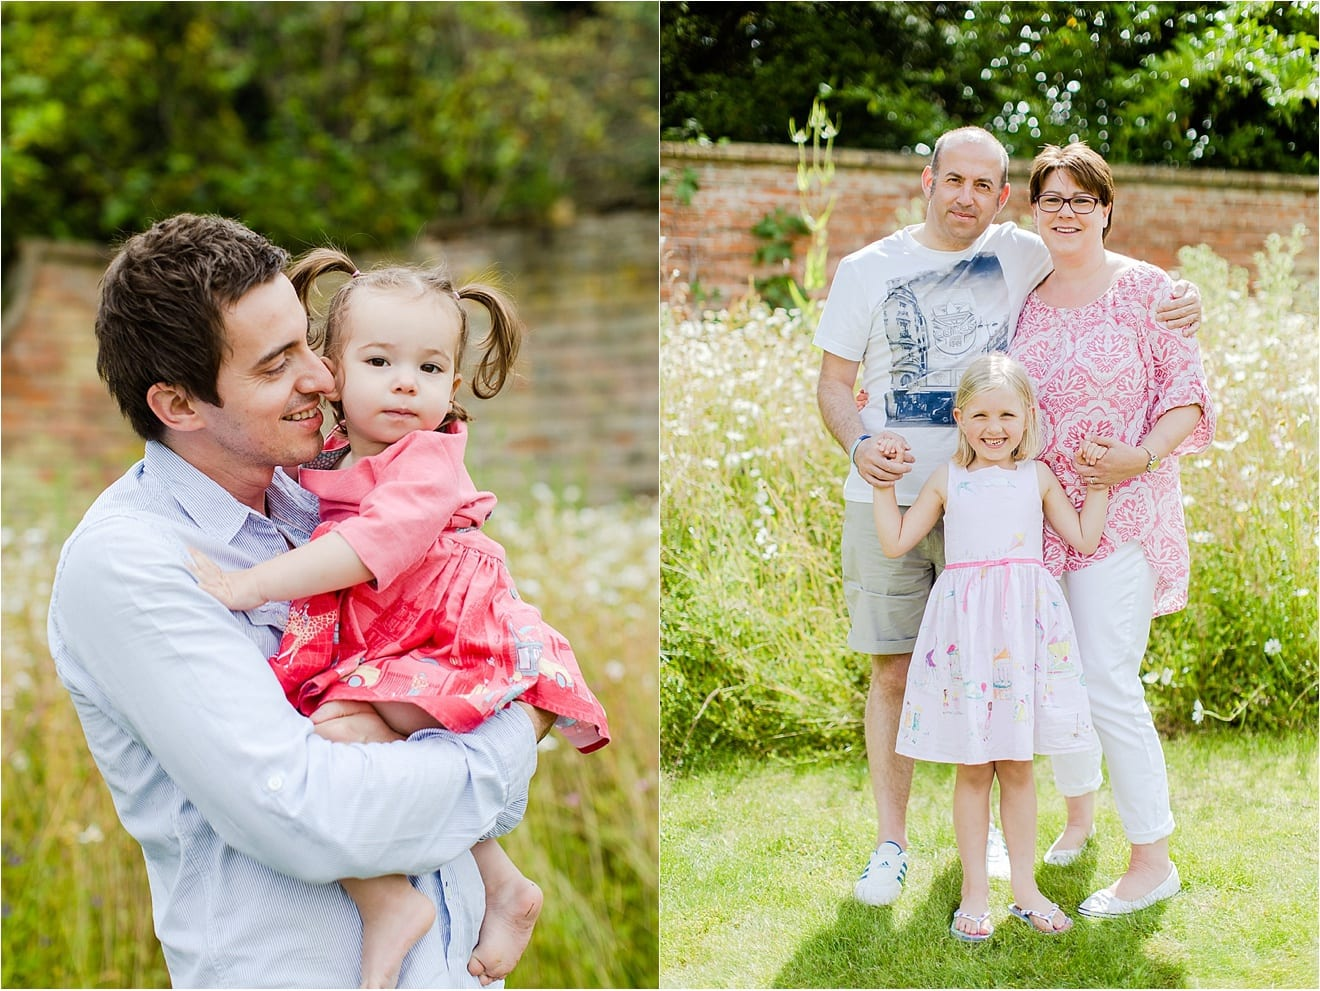 family-photography-surrey-eddie-judd-photographer-mini-sessions-cobham-medicine-garden_0017